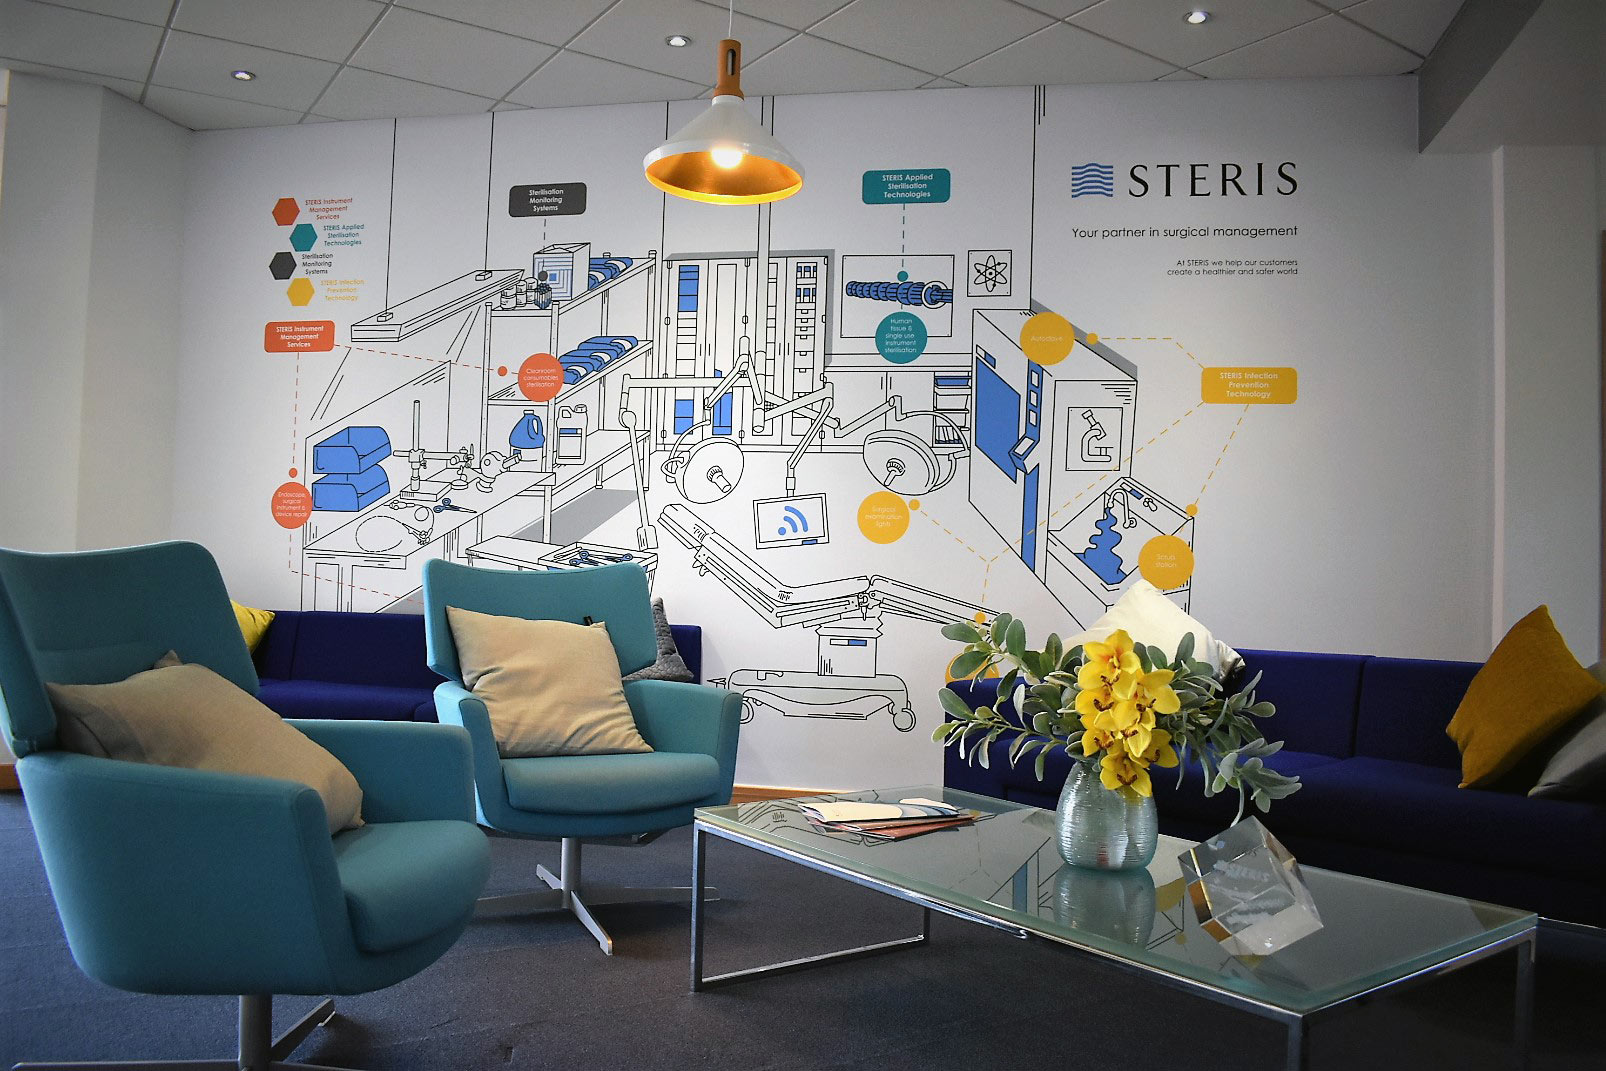 New Visual for our Reception Area at our European HQ